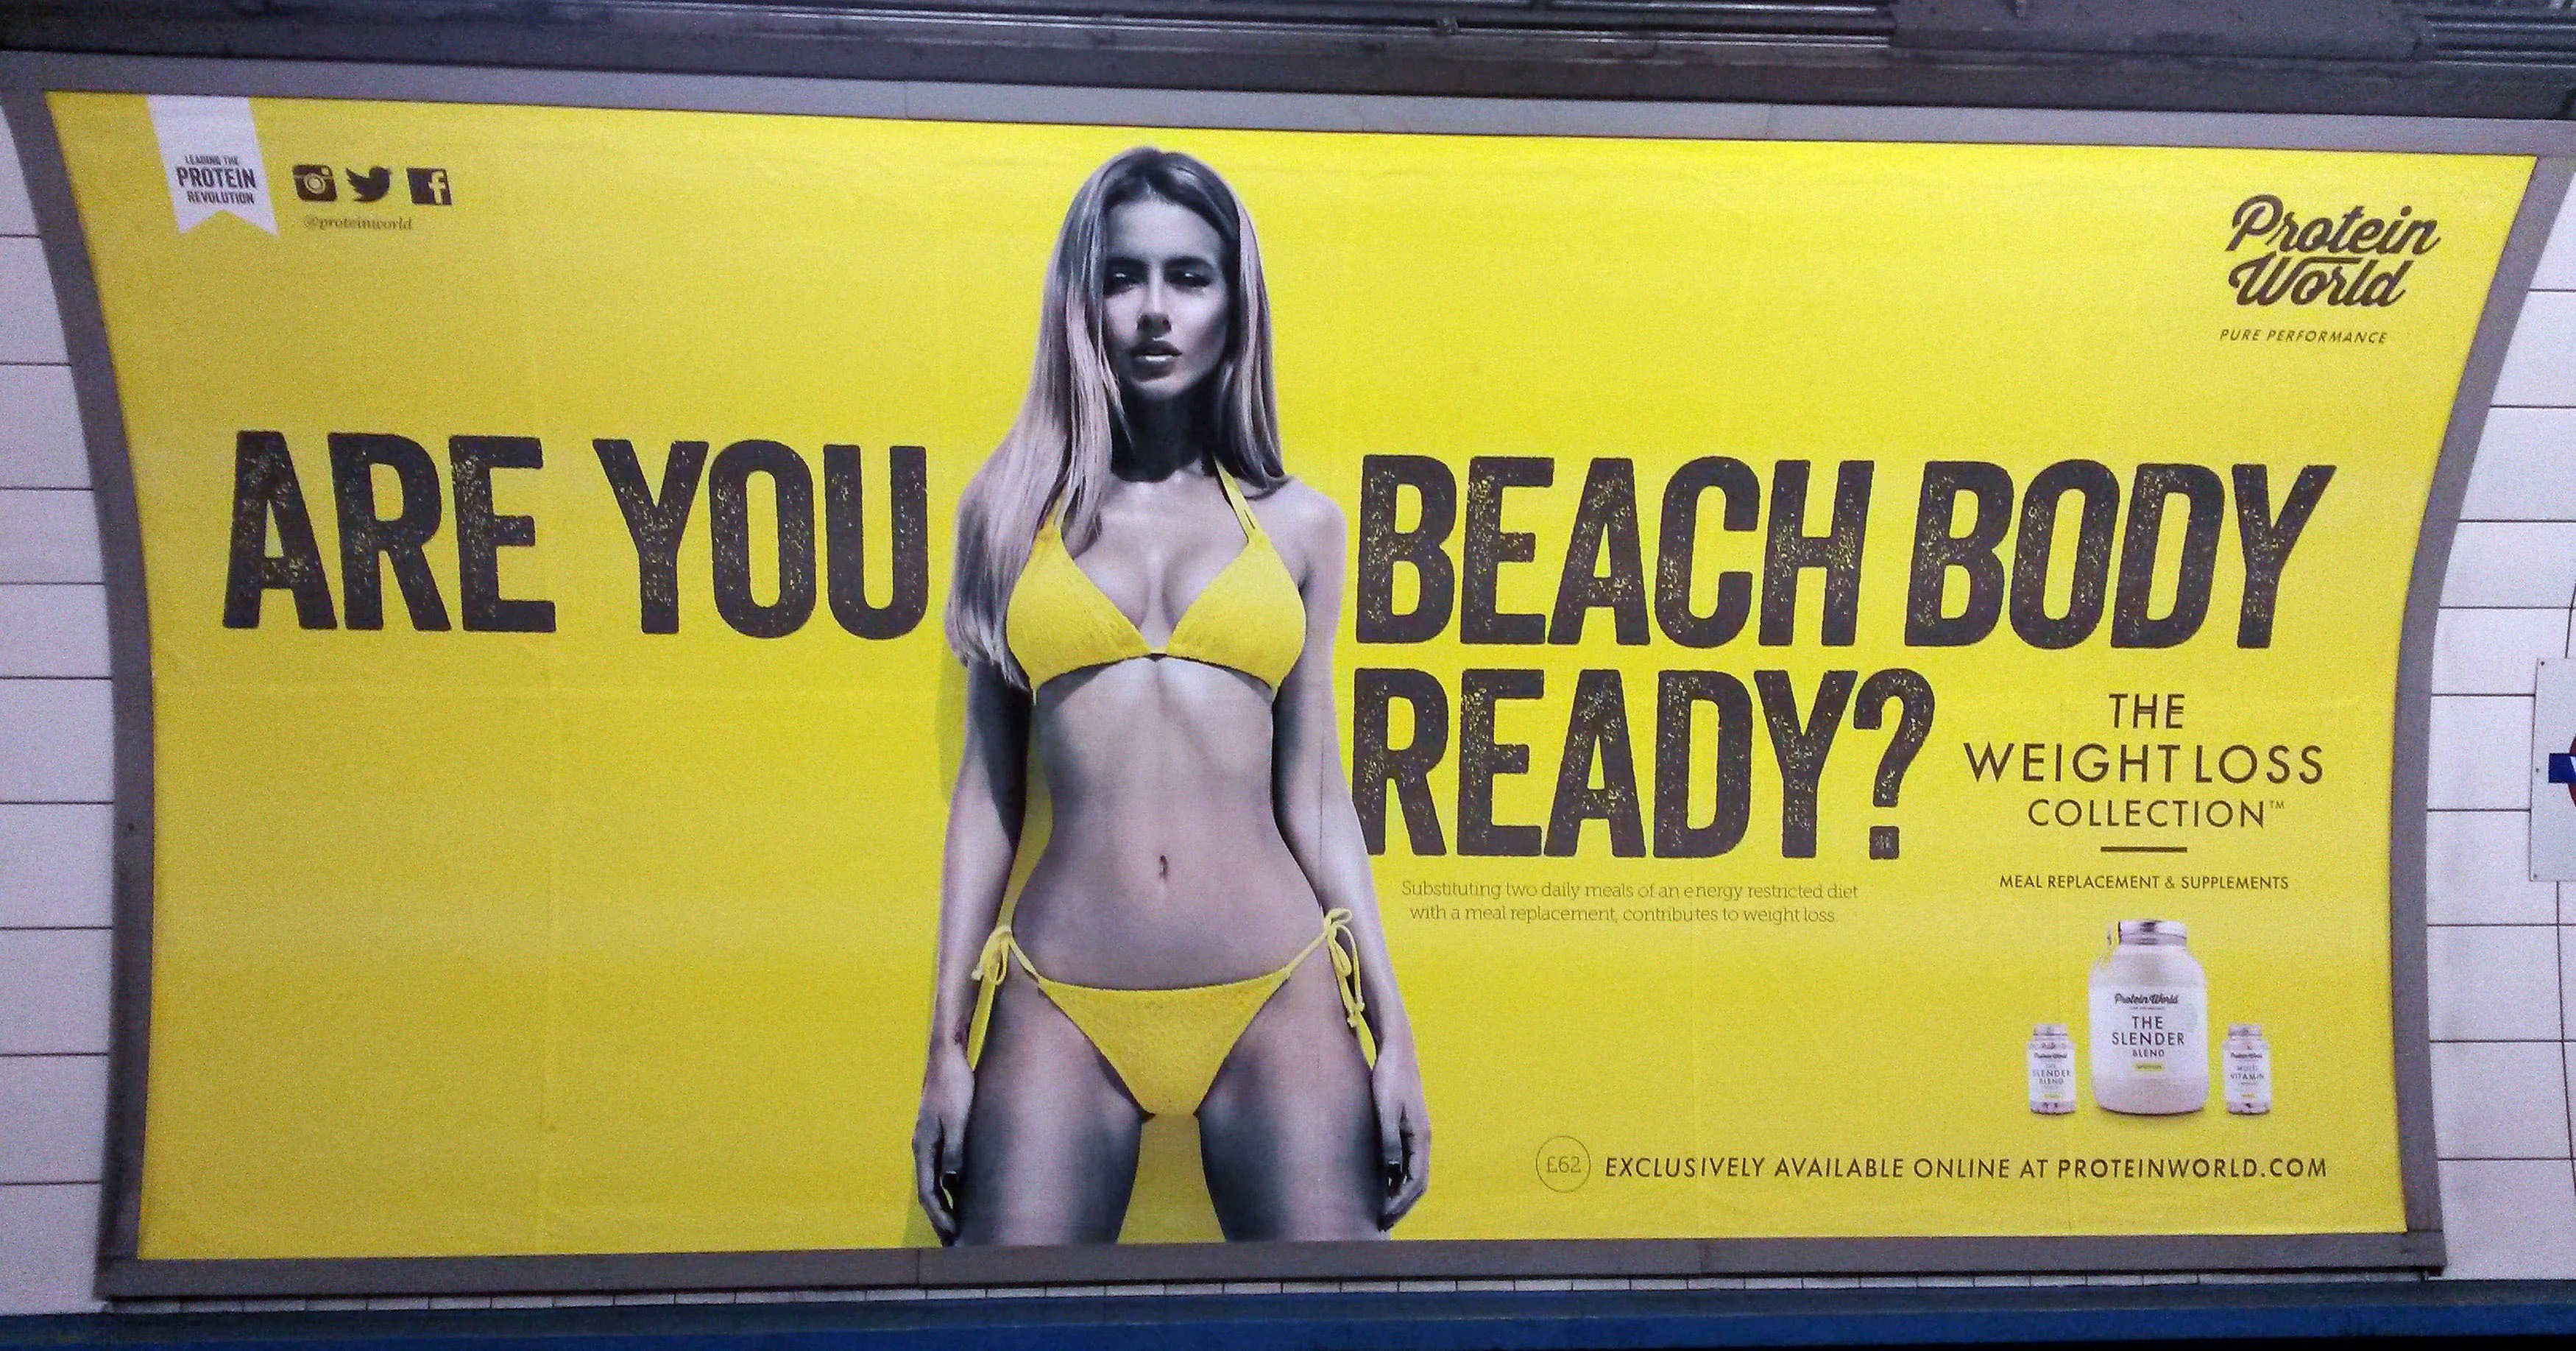 The ad for Protein World, a maker of dietary supplements, drew protests when it appears in subway stations across London in April 2015. (Catherine Wylie/AP)